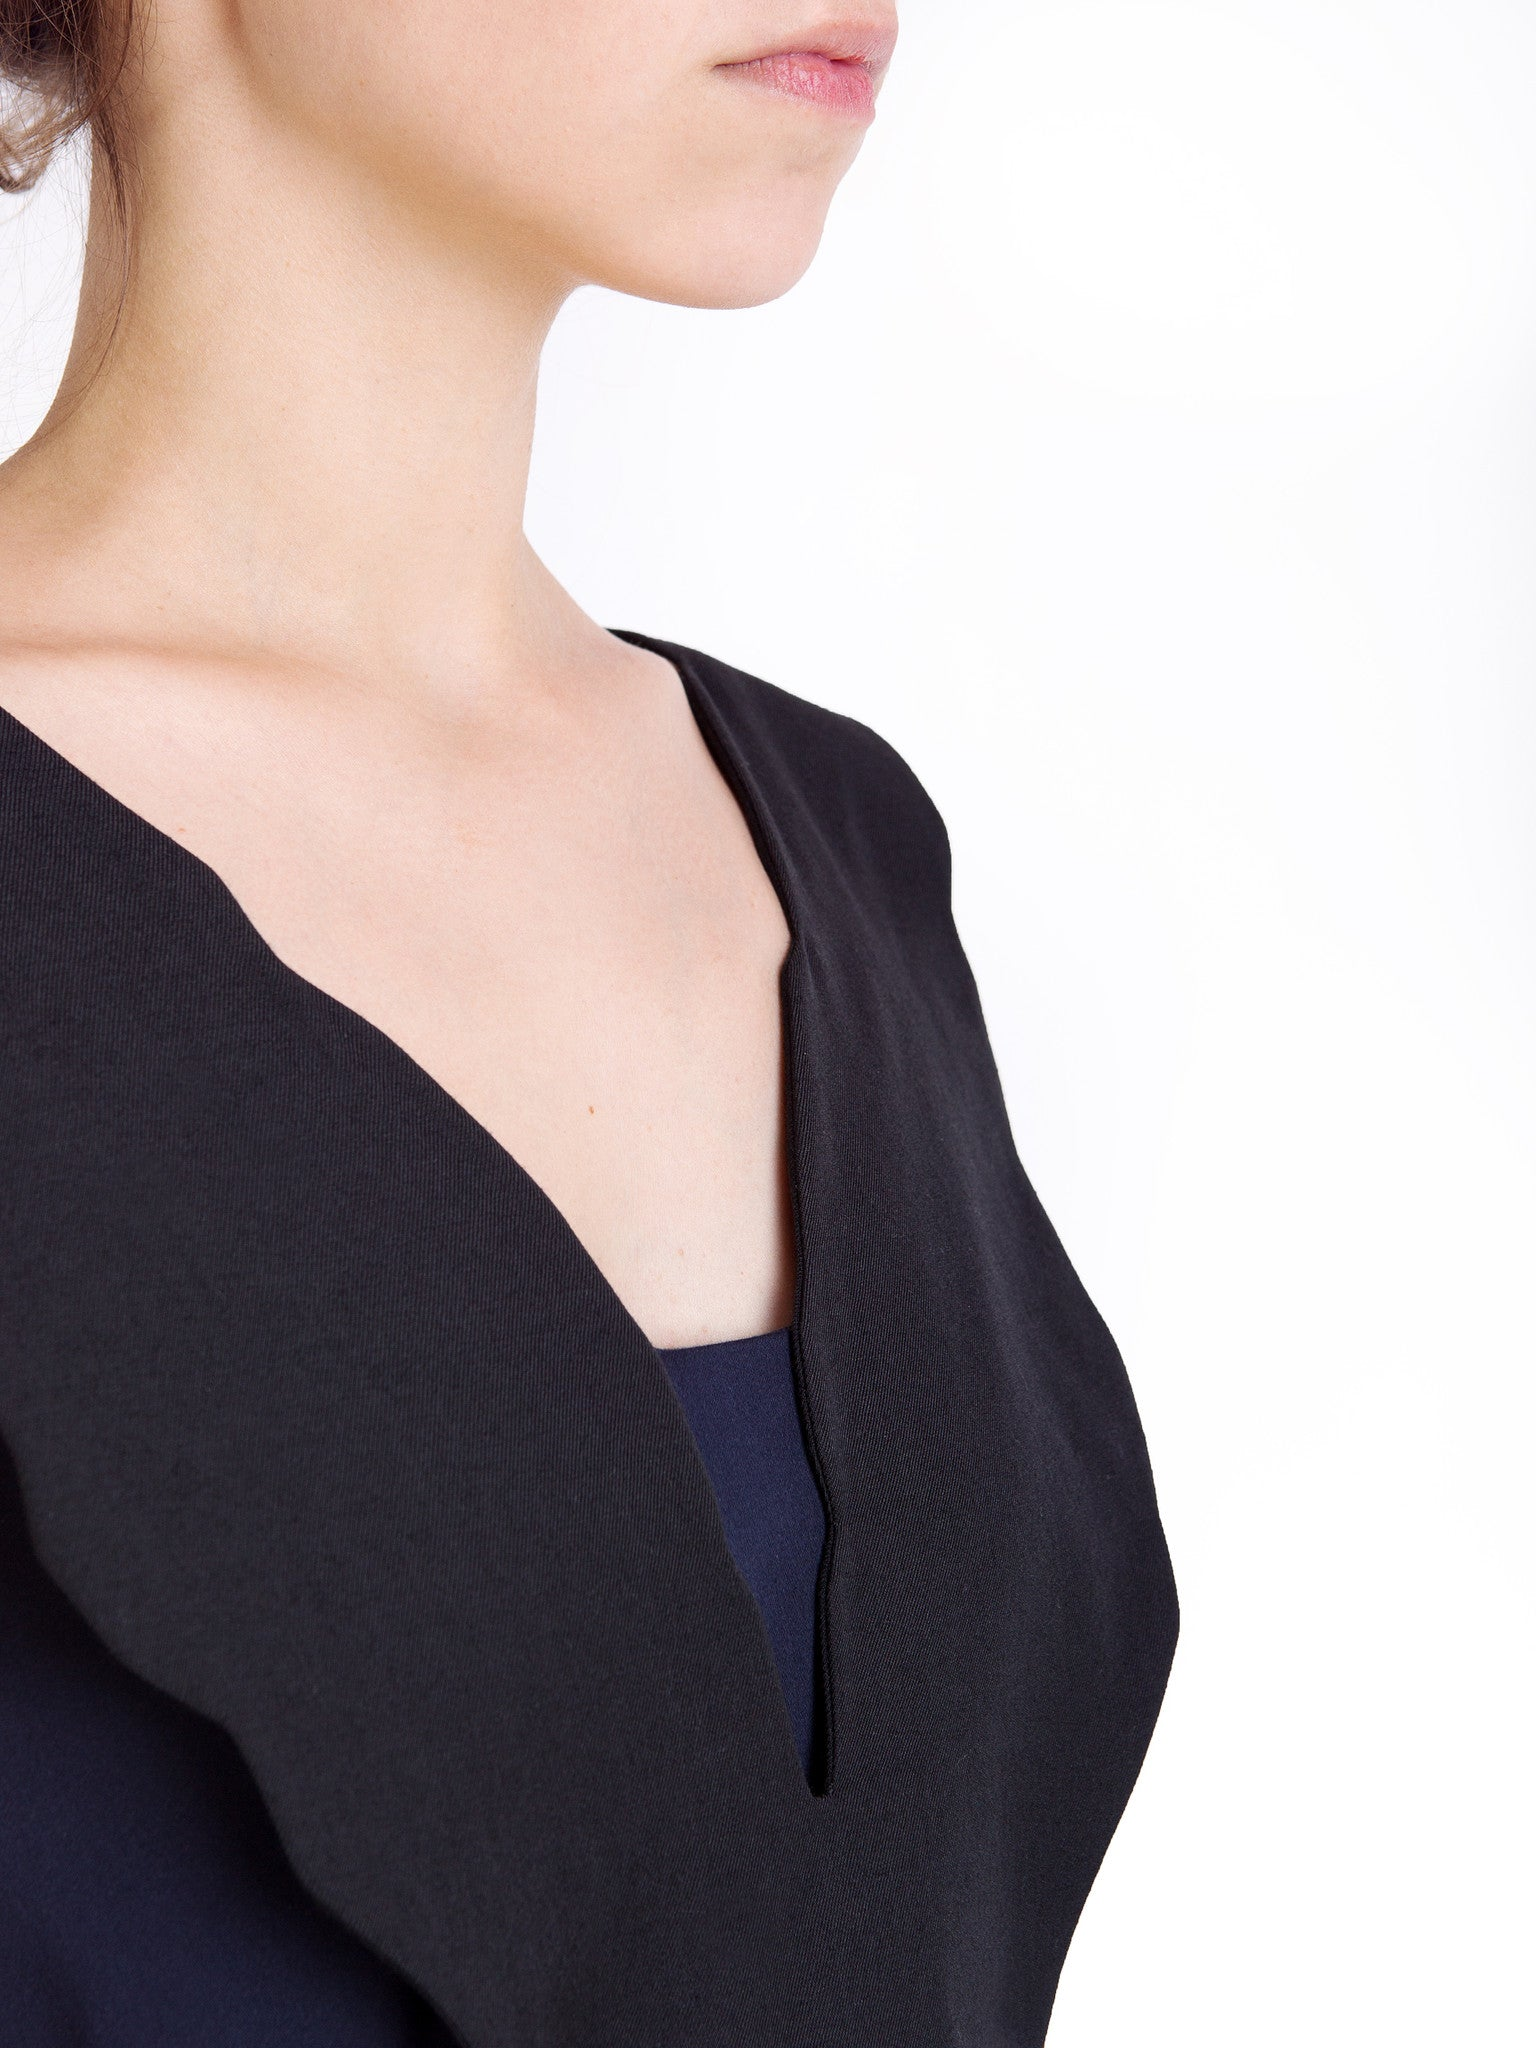 Ambali Black and Navy Dress Collar Detail